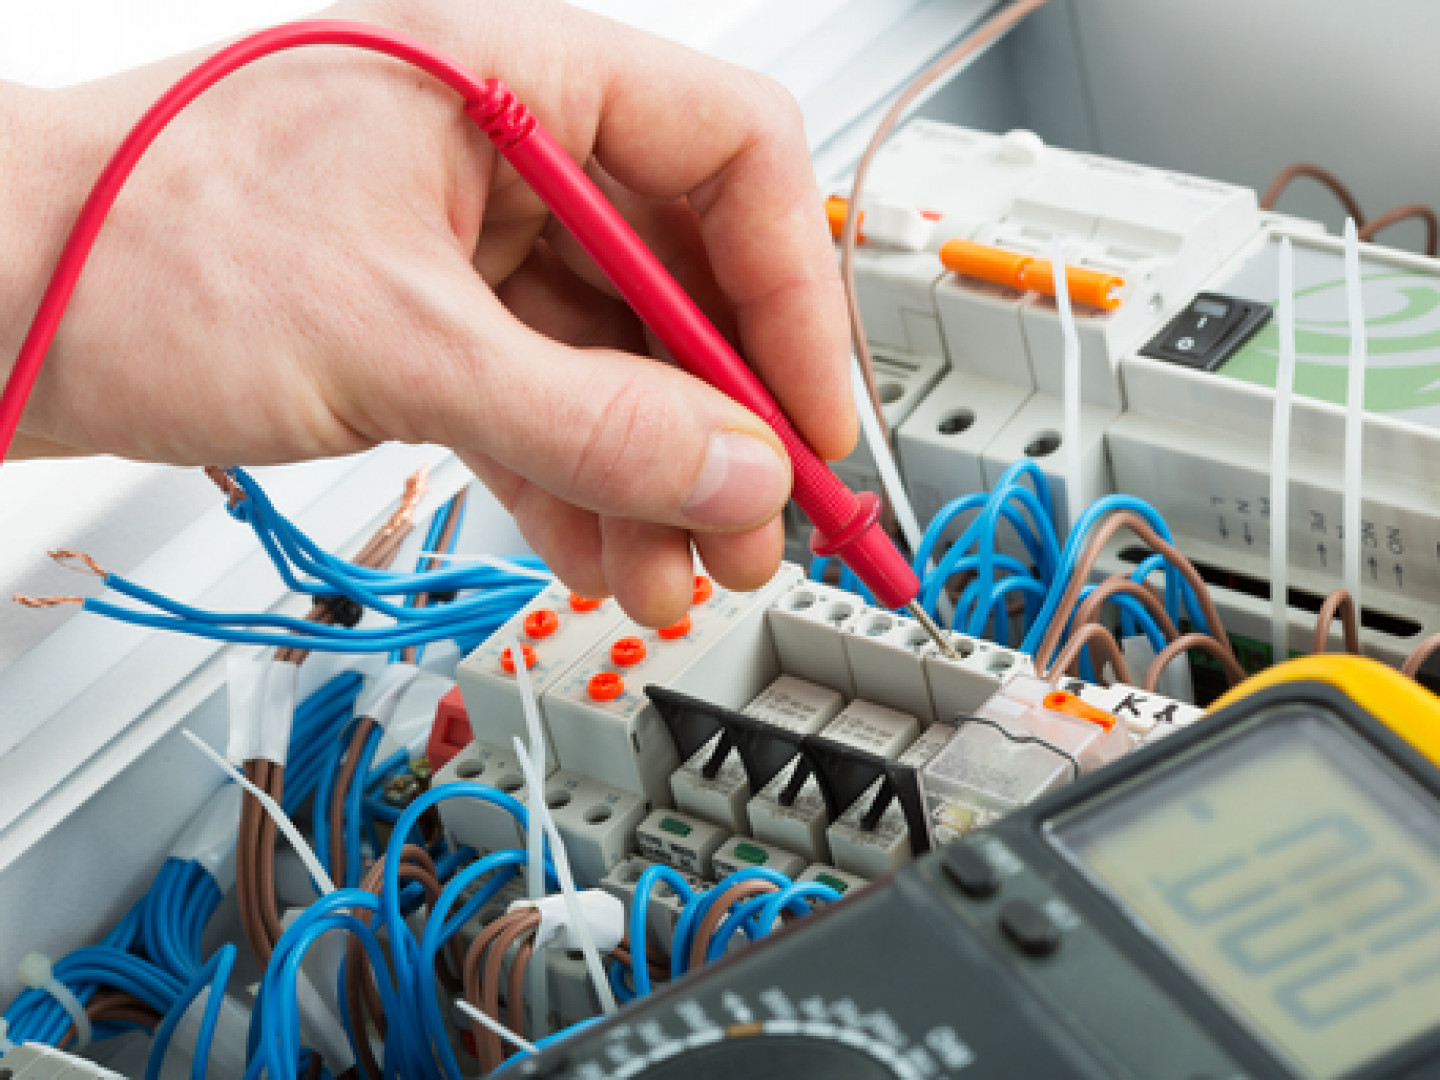 Searching for Electrical Services in Brick & Point Pleasant, NJ?